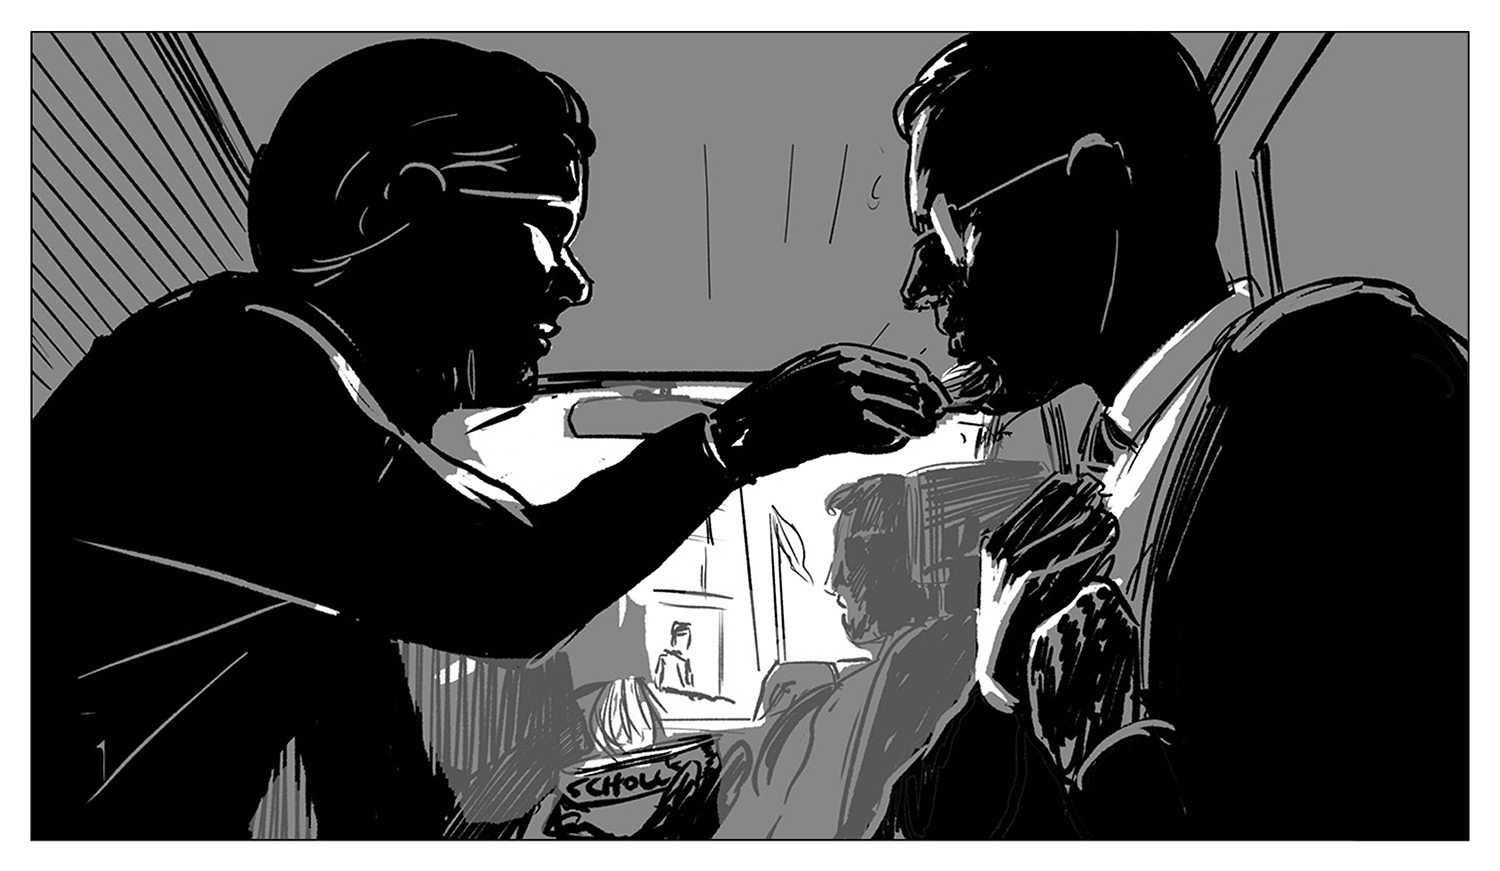 Mendez and Tugboat are silhouetted in the back of a van as she works on his disguise, a can of Dr. Scholl's foot powder in her hand. He adjusts his tie as the van approaches the embassy security guard.